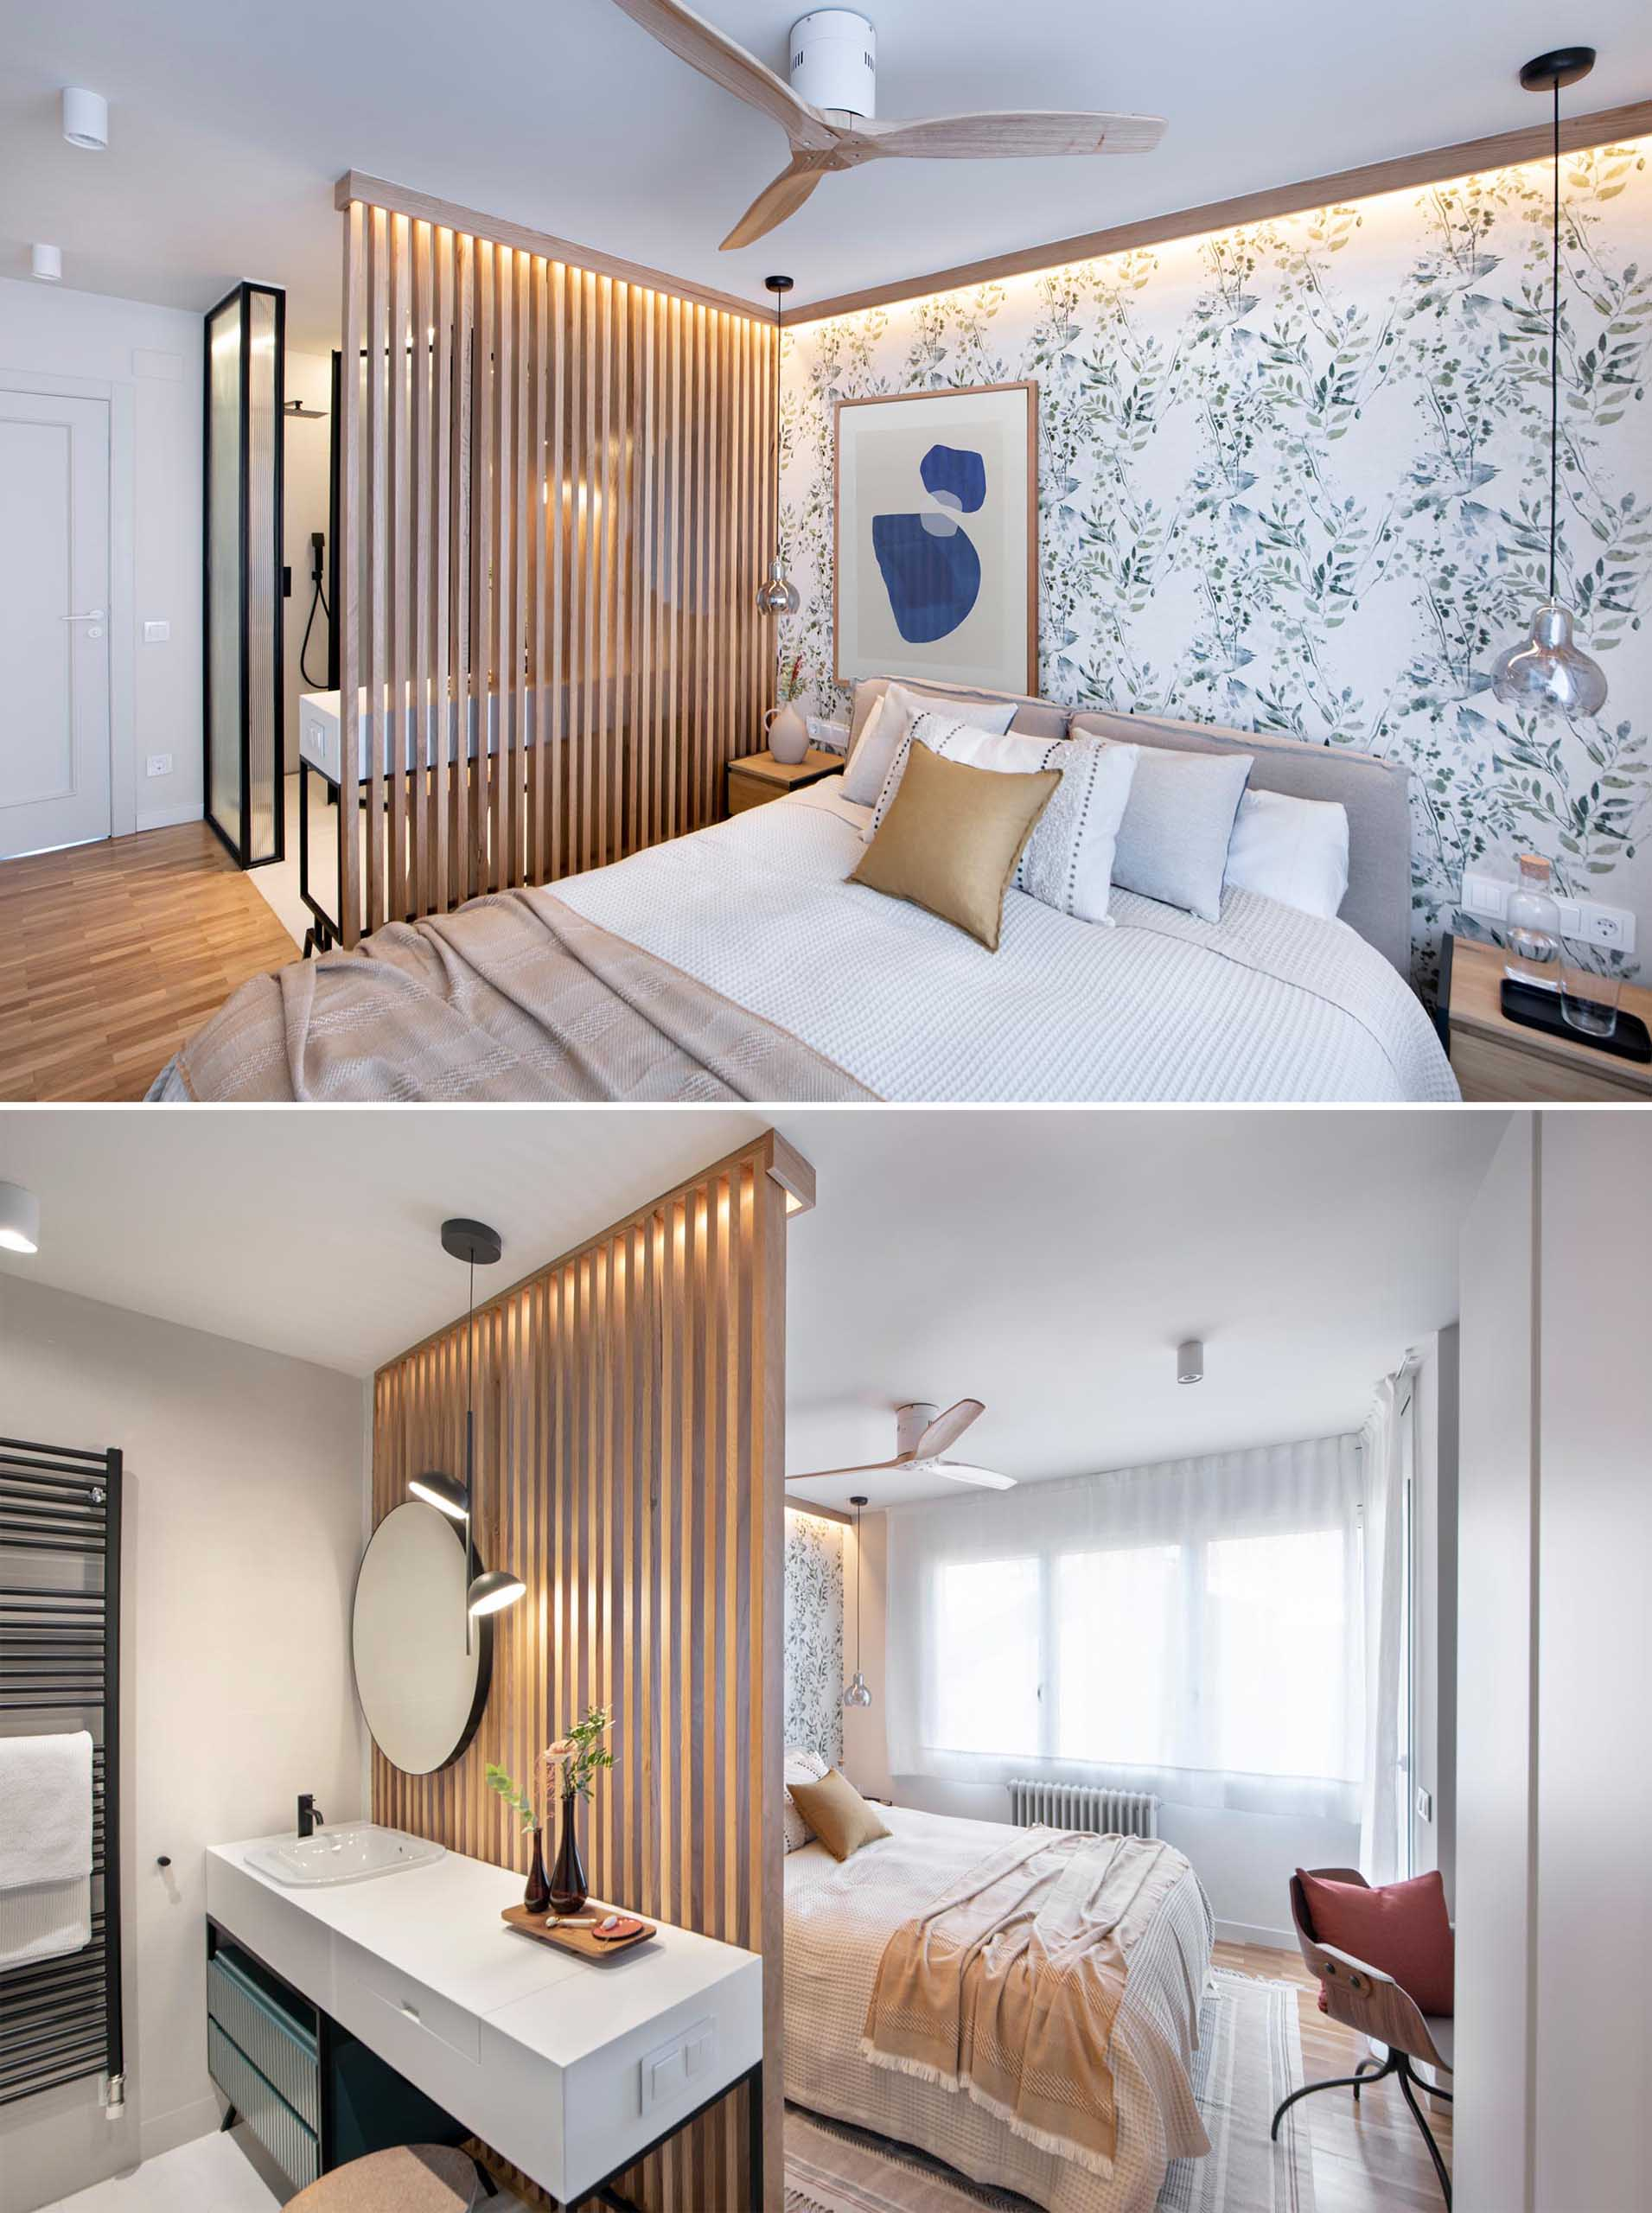 A modern primary bedroom and en-suite bathroom. Botanical wallpaper creates a feature wall, while the wood slat accent wall provides separation between the sleeping area and the bathroom.